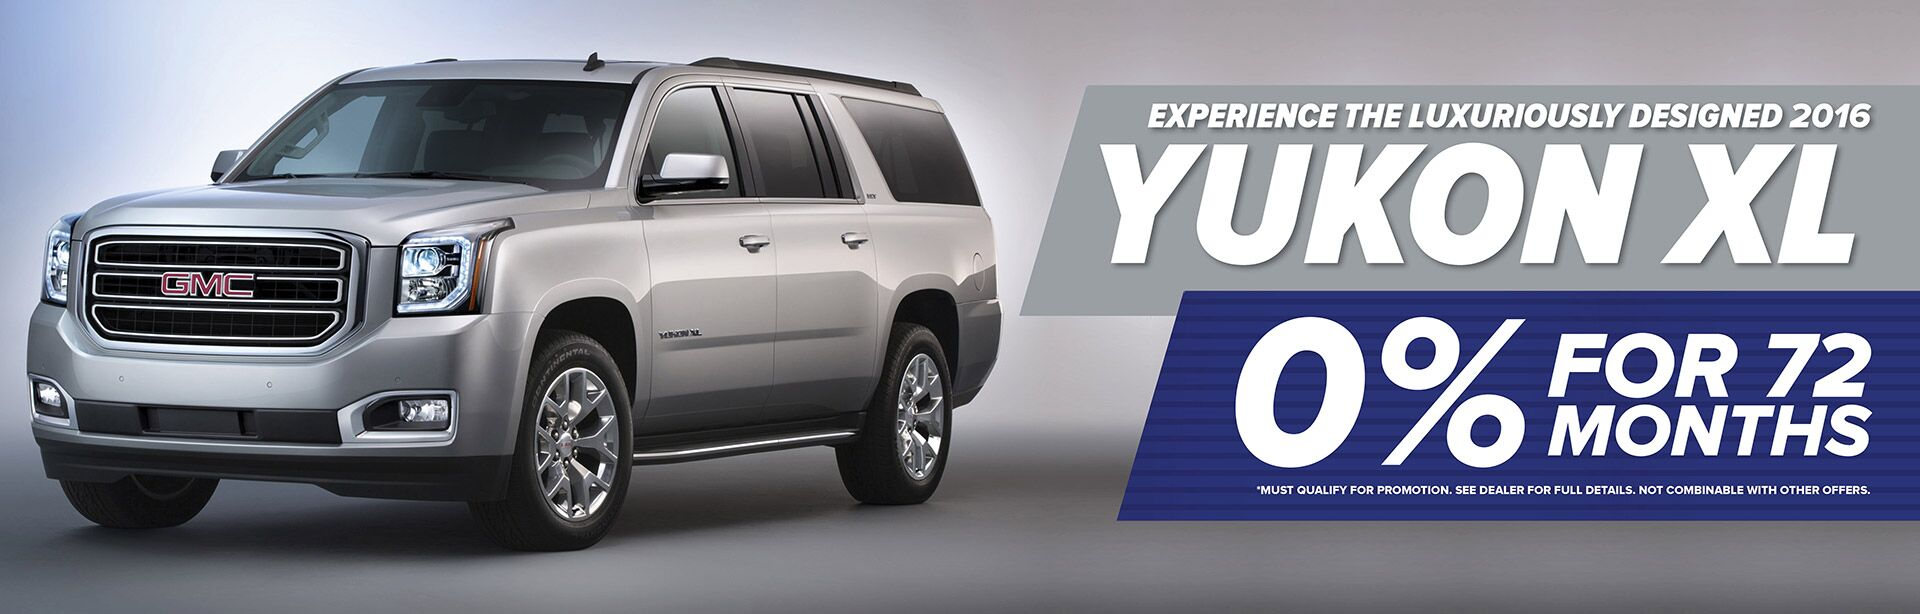 yukon xl 0 for 73 months